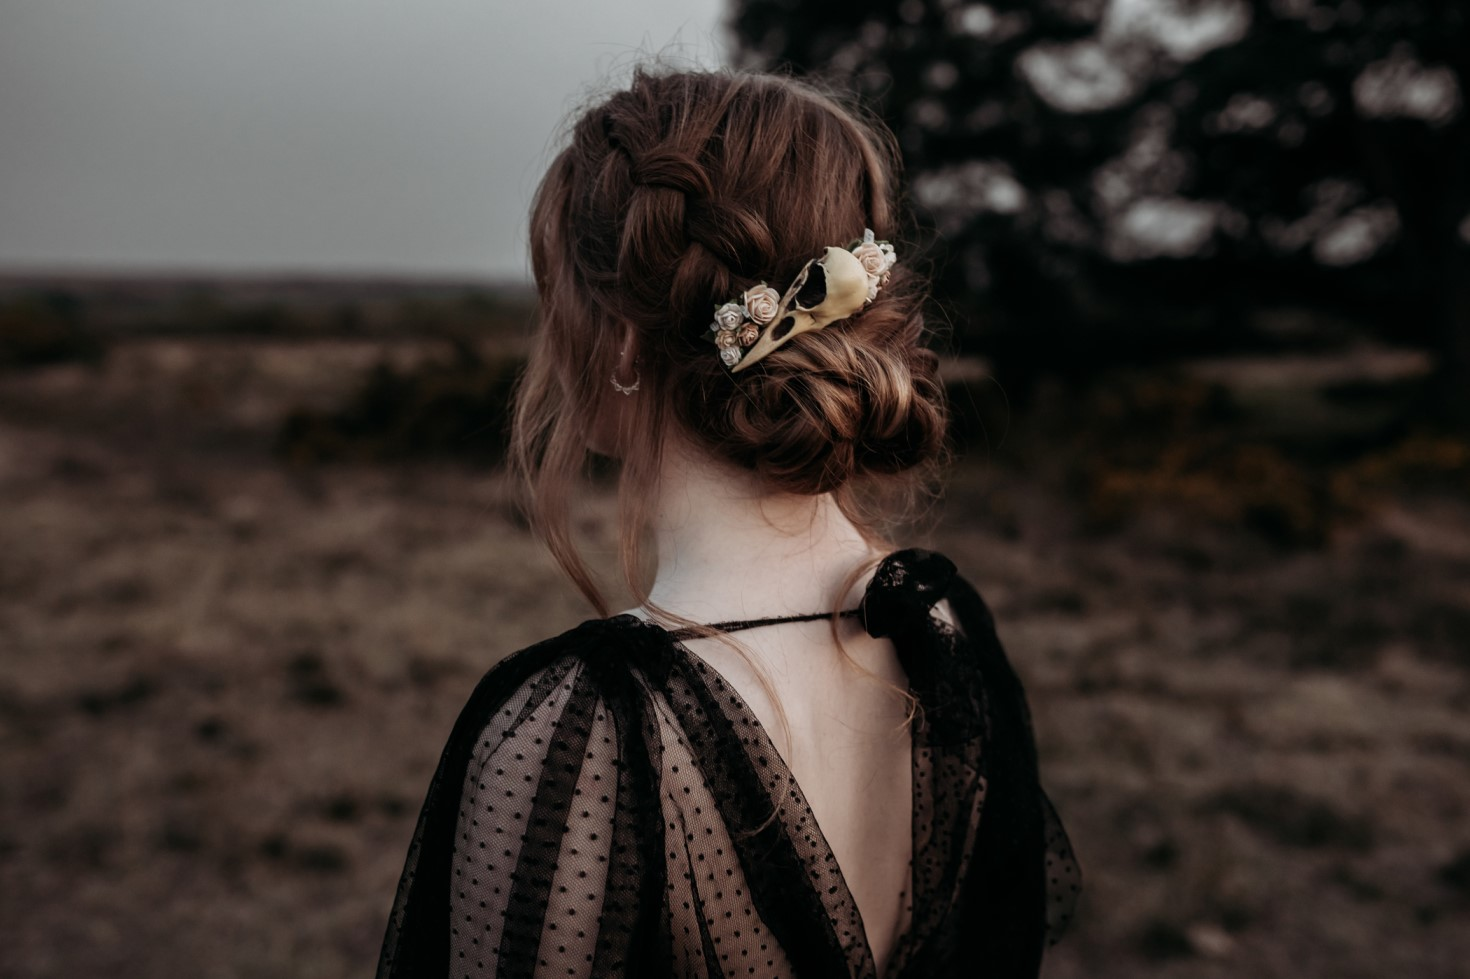 Finn And The Fox Photography-Moody Elopement Wedding- Gothic wedding hair accessories - skull hair accessory - black wedding dress